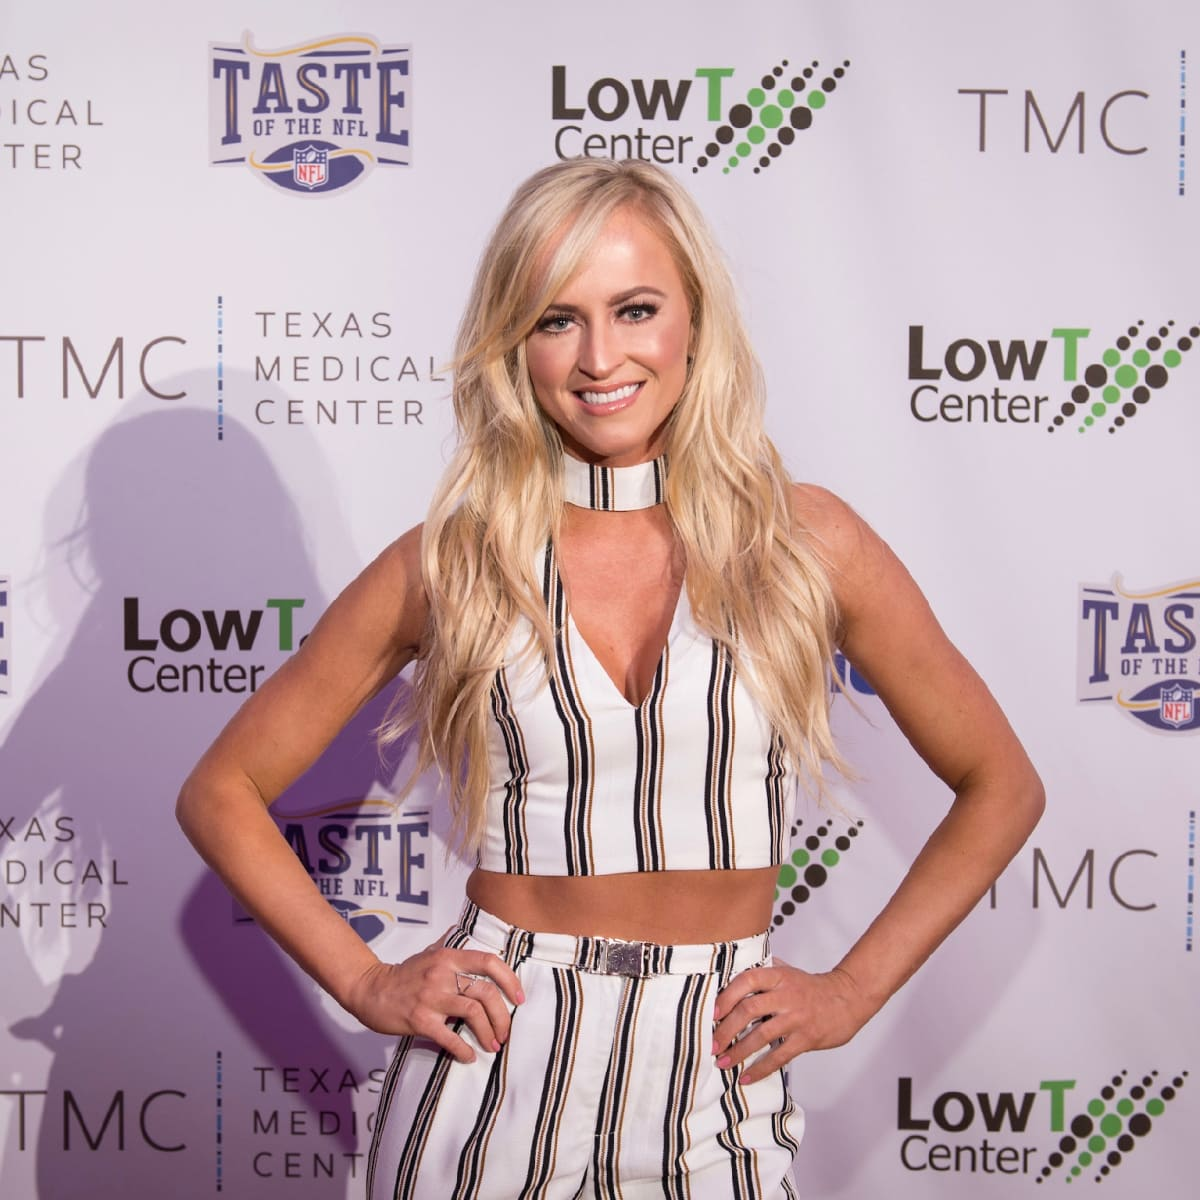 Taste of the NFL WWE Summer Rae Danielle Moinet